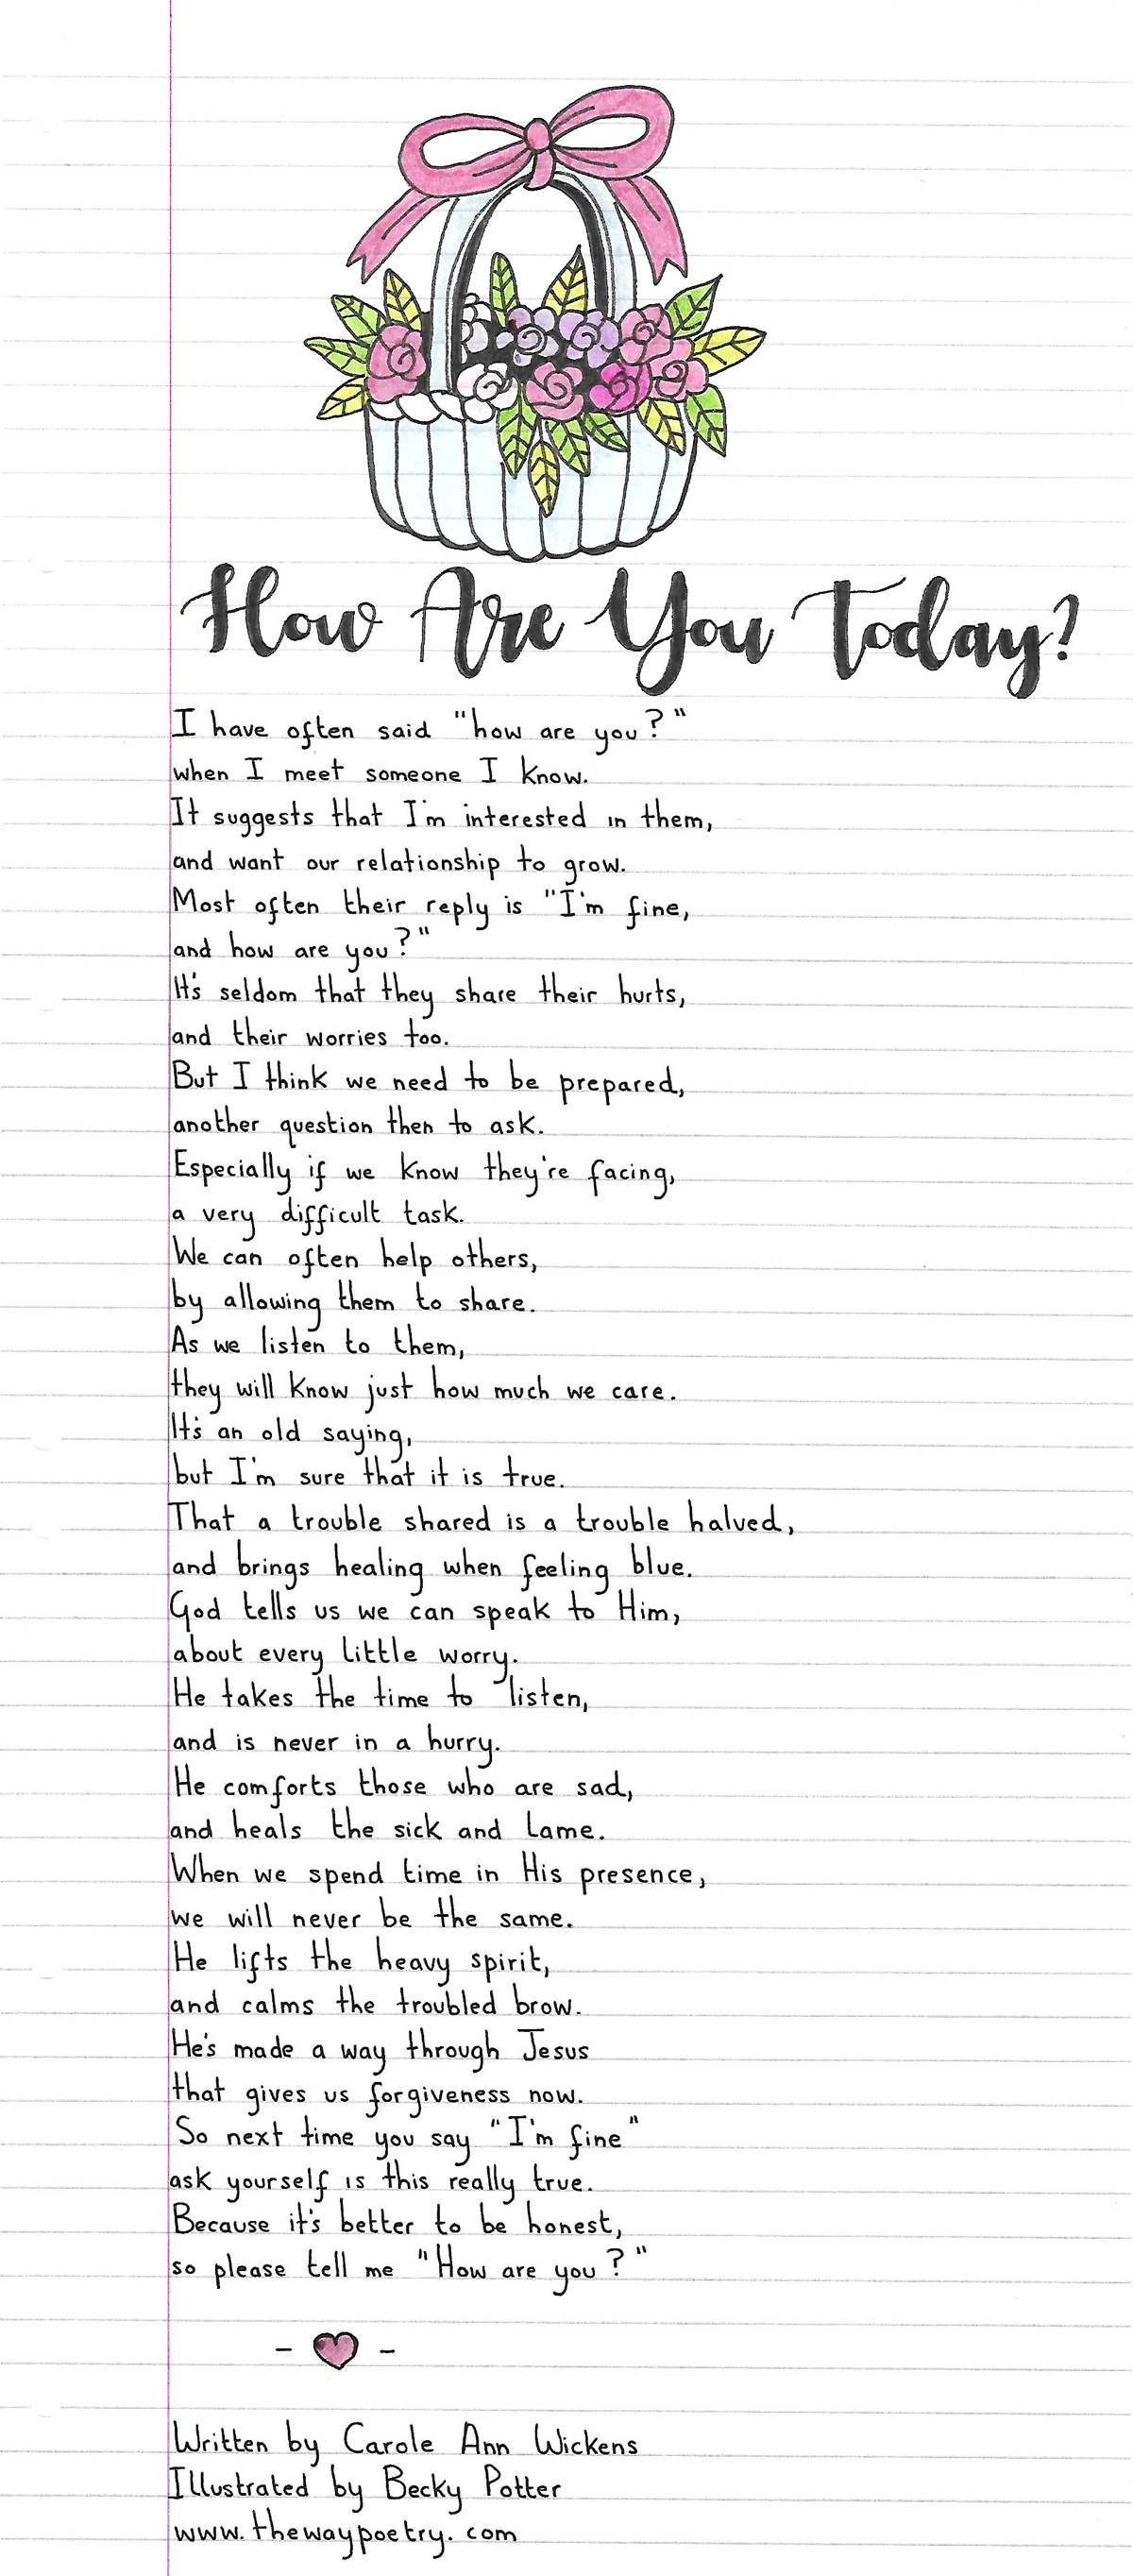 How Are You Today? by Carole Ann Wickens